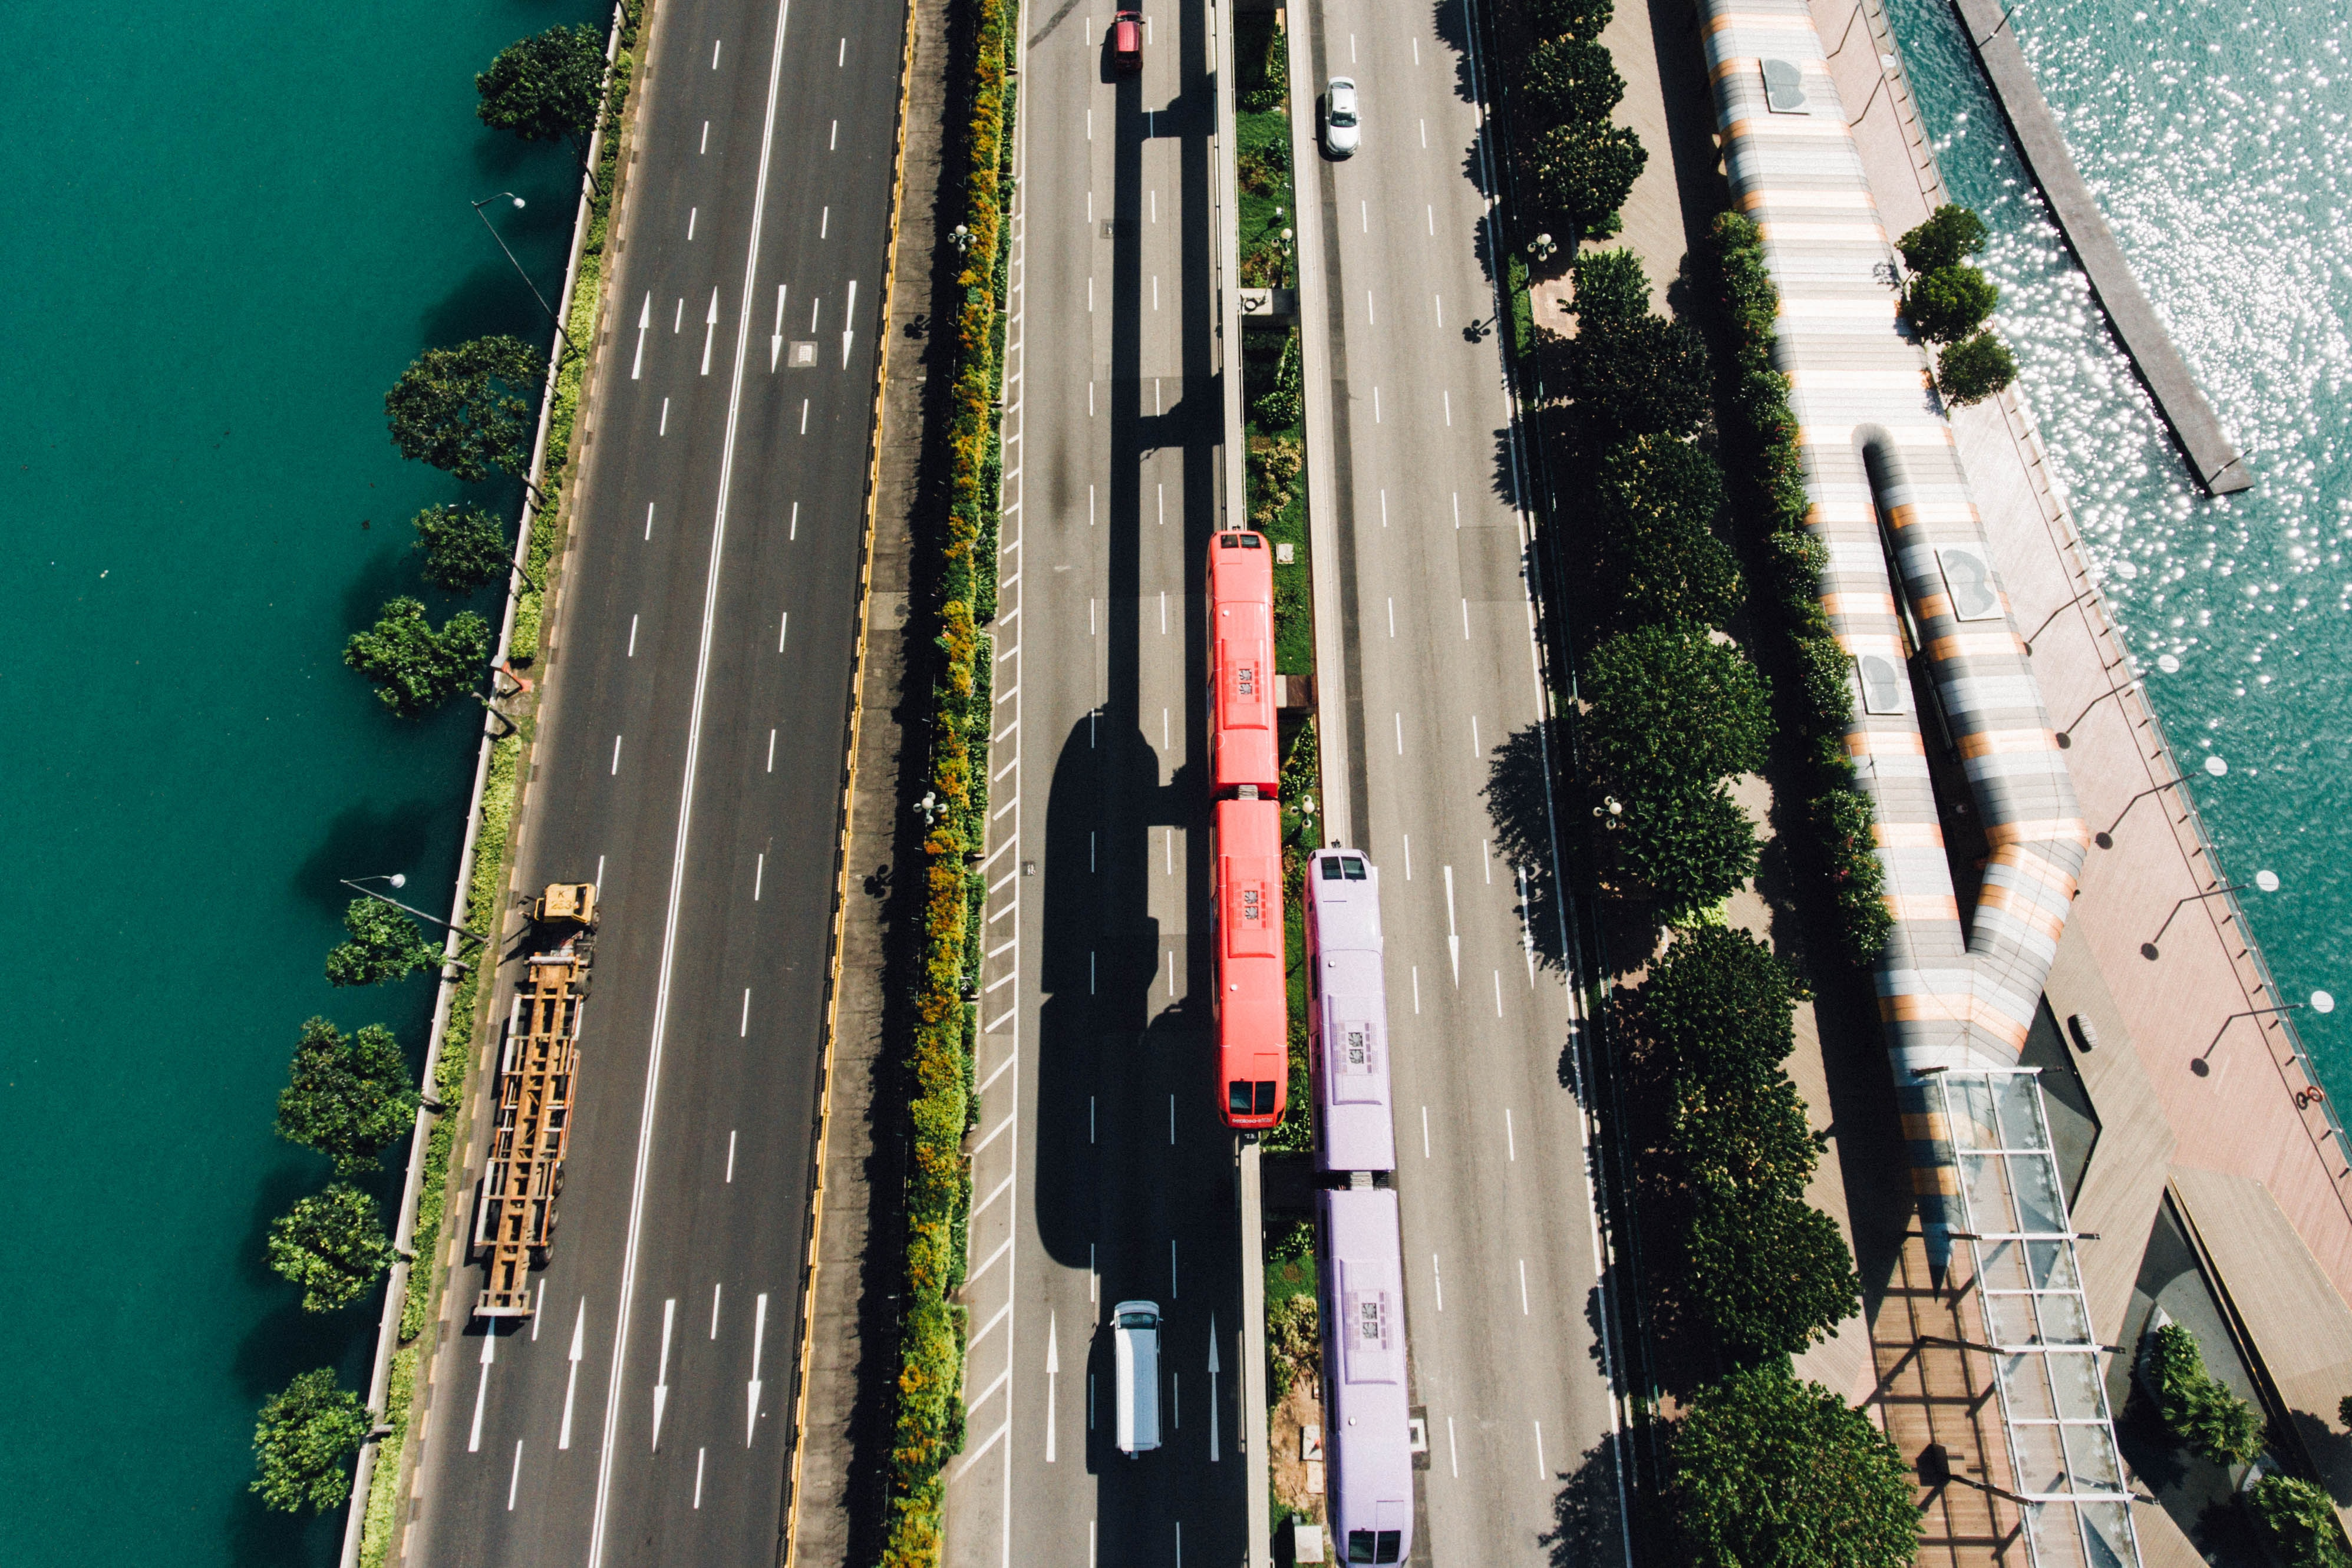 A drone shot of urban trains in the middle of a freeway in singapore